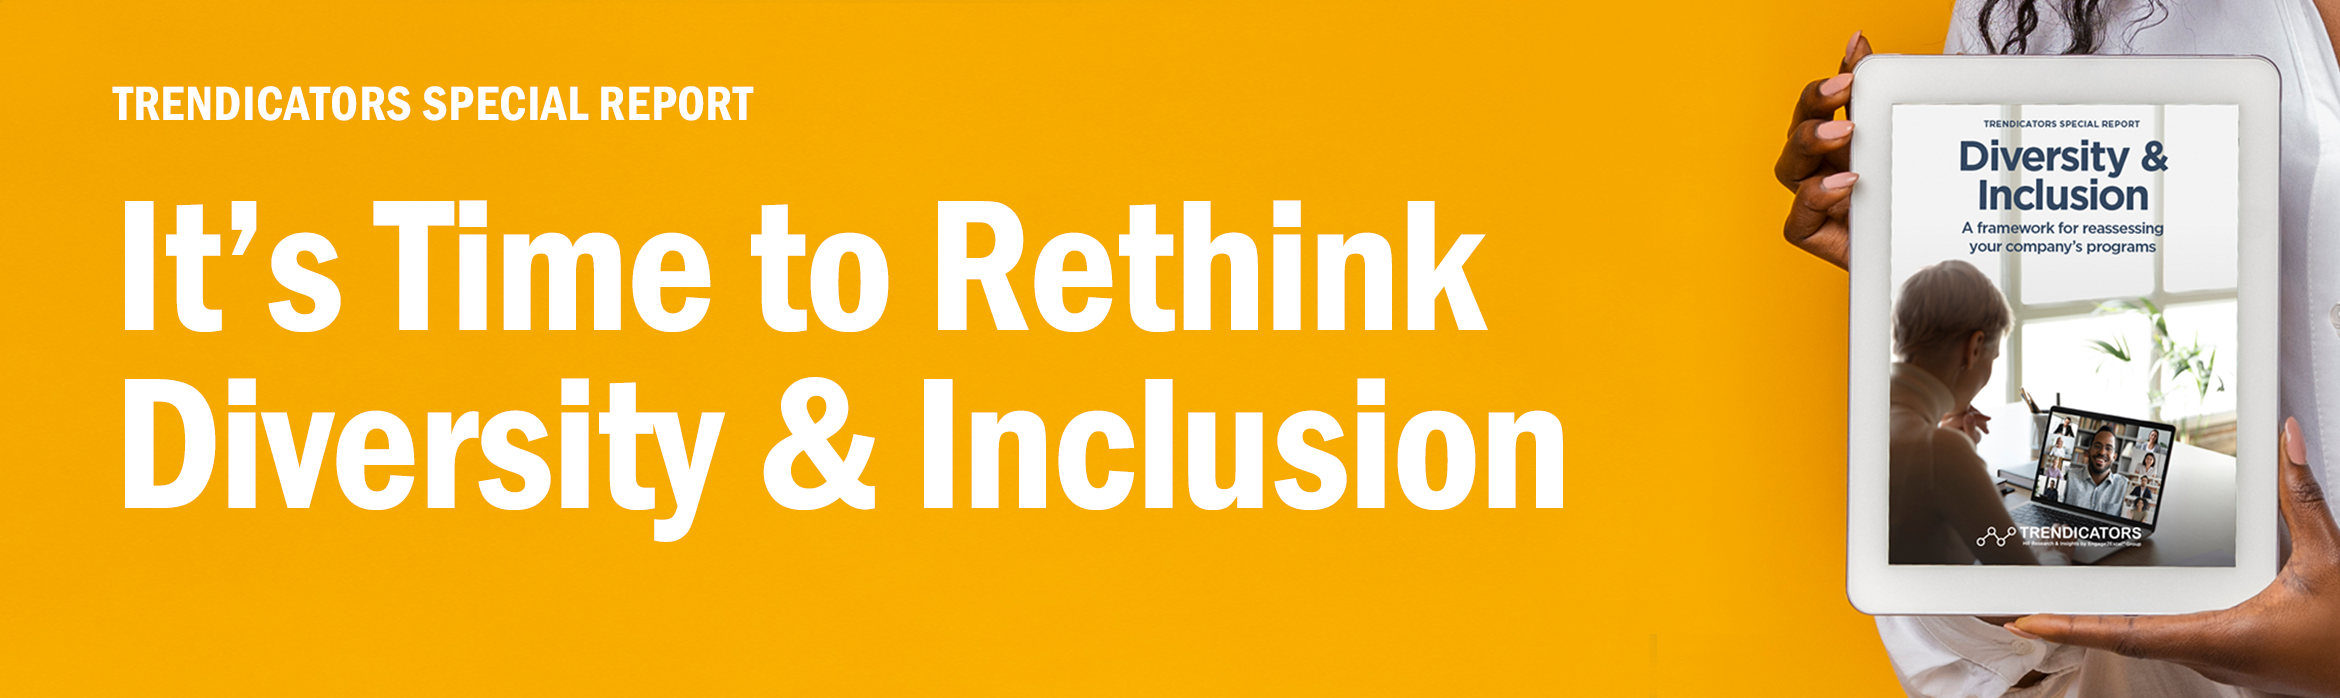 It's Time to Rethink Diversity and Inclusion